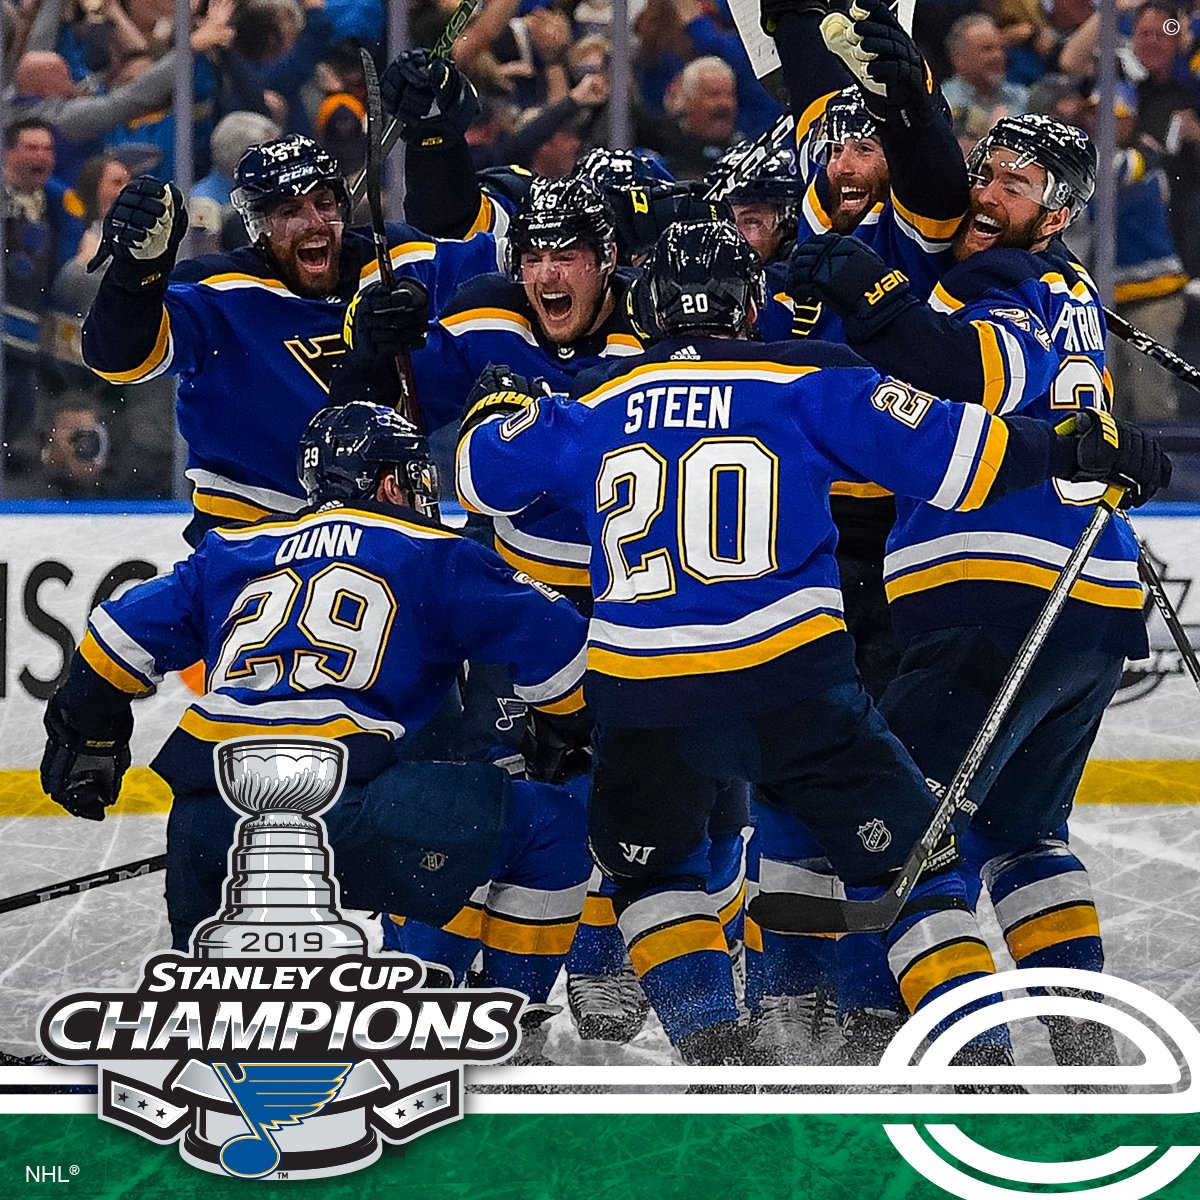 YOU DID IT @StLouisBlues! Congratulations 2019 #StanleyCup Champions! You've picked up an entire city with your never-ending effort, resolve and teamwork. (And in the inaugural year of the @Enterprise_Cntr, no less!) We couldn't be prouder!